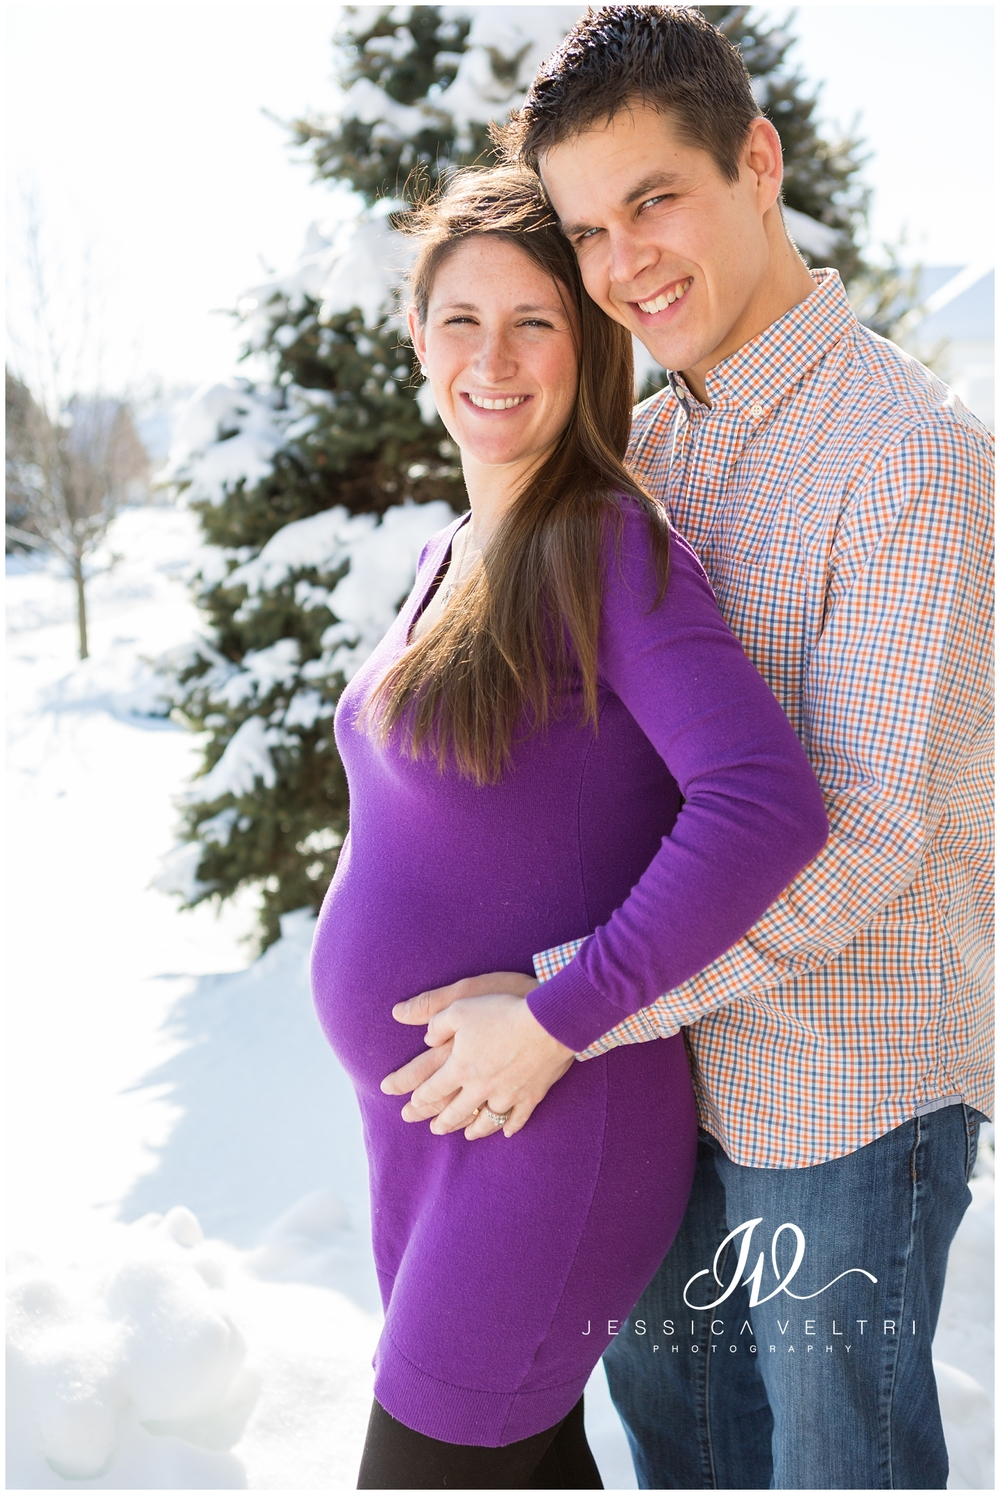 Washington D.C. Wedding Photographer | Jessica Veltri_0193.jpg